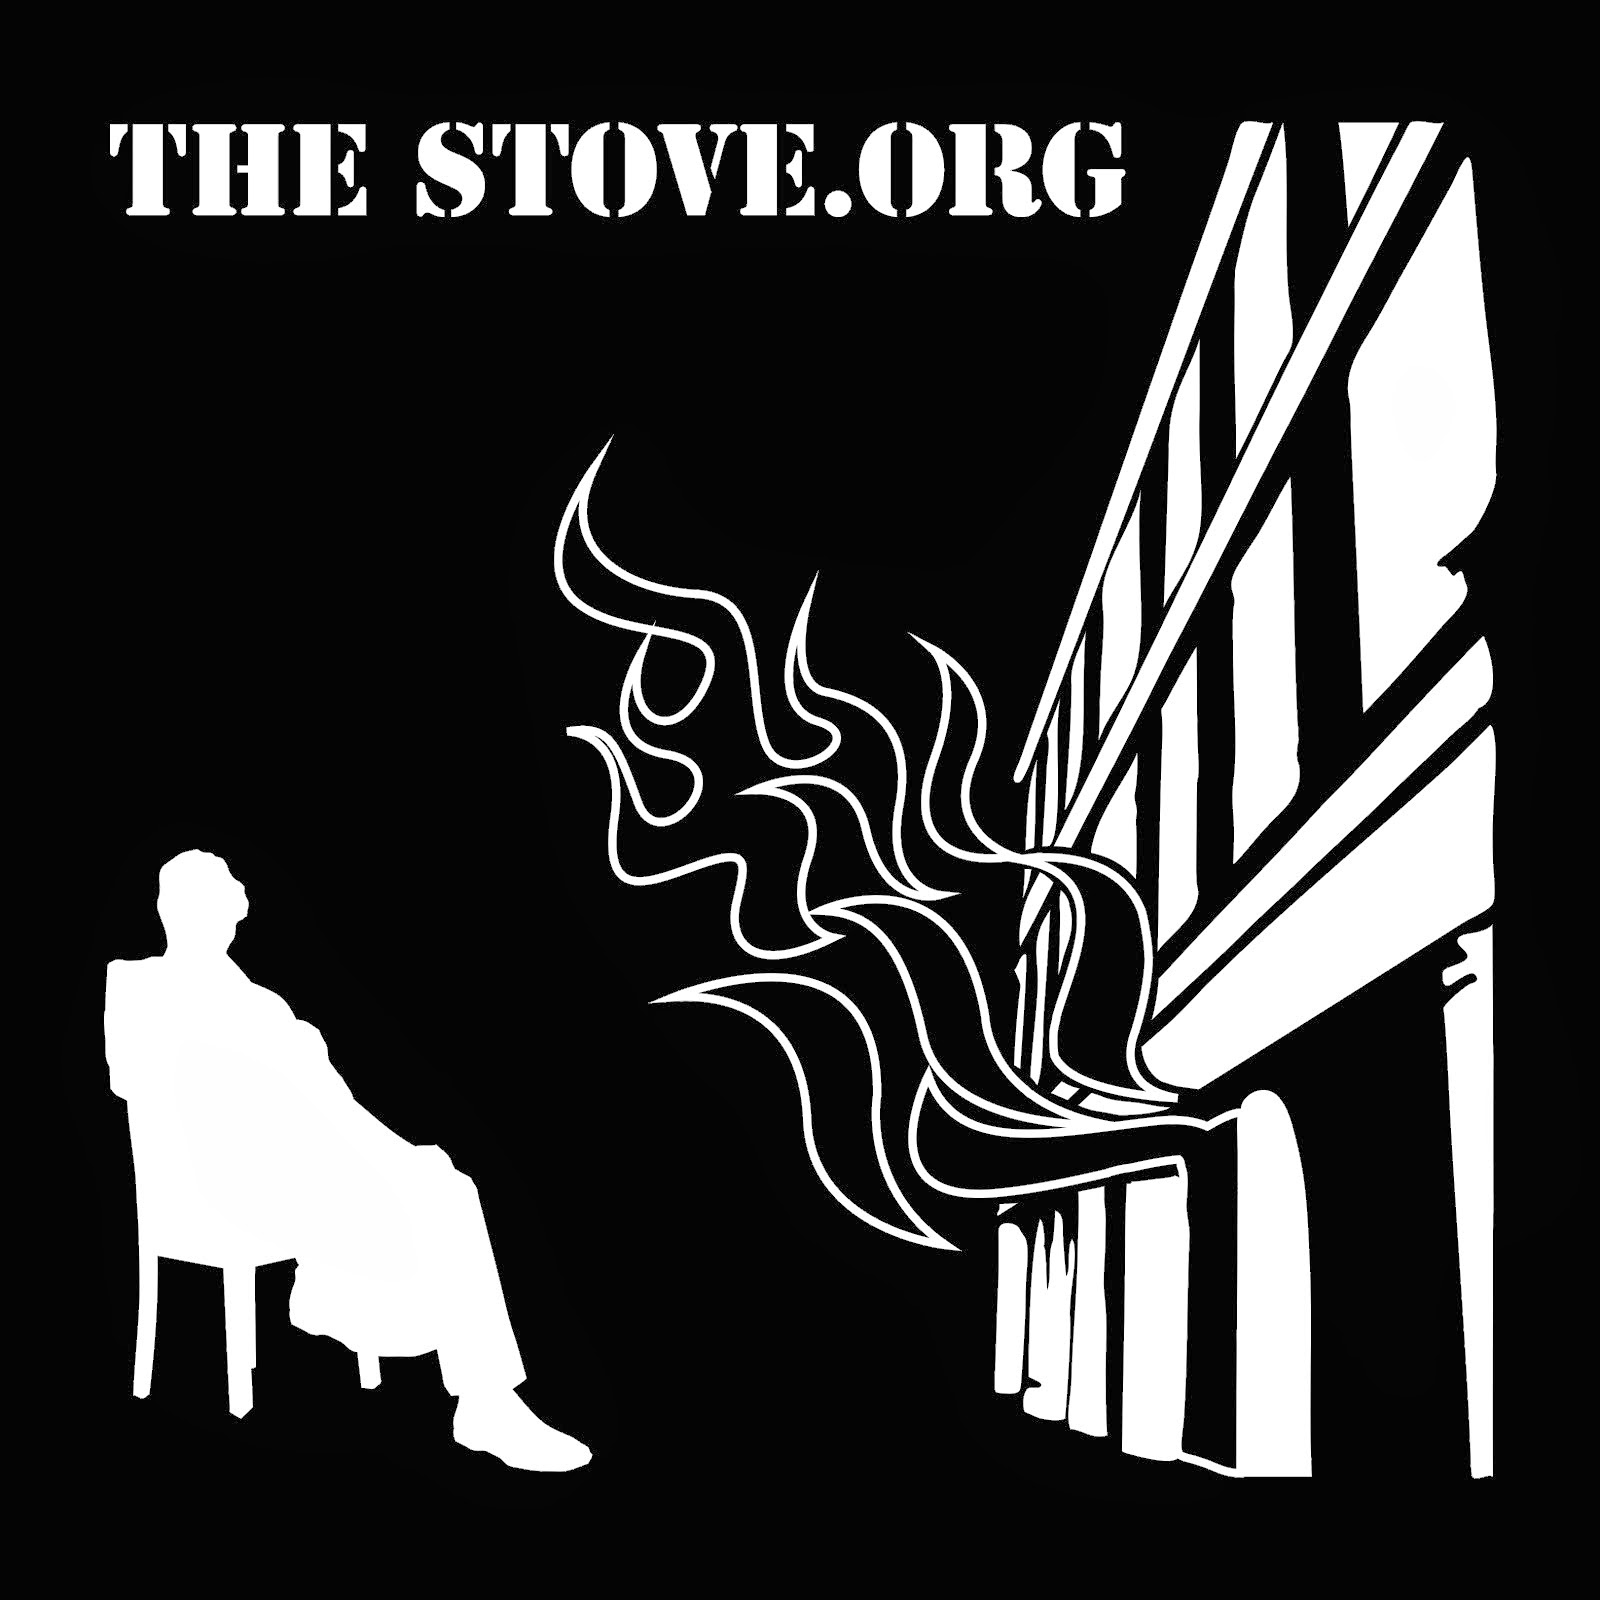 The Stove Network